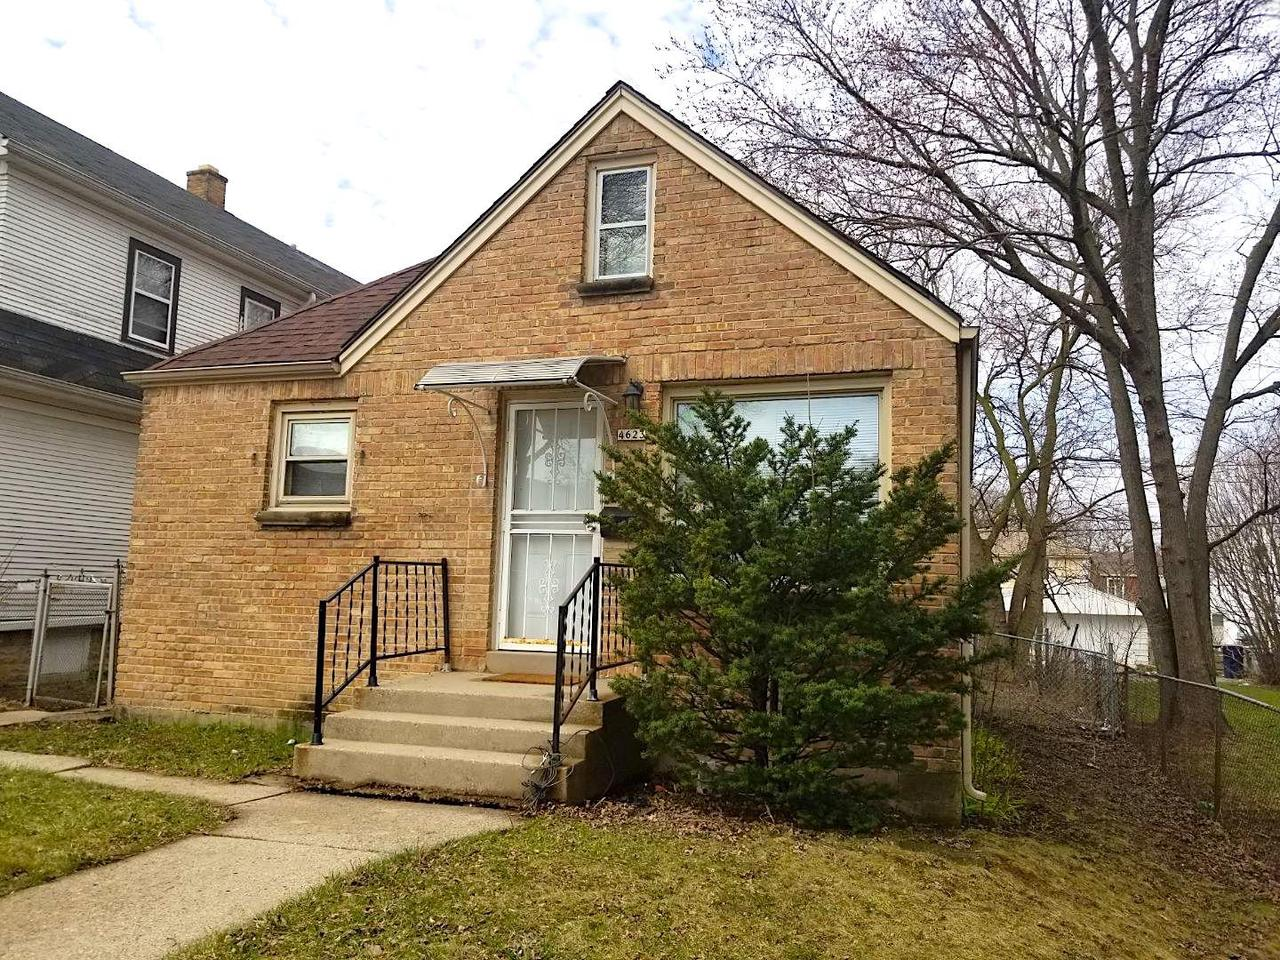 4623 N 38th St STREET, MILWAUKEE, WI 53209